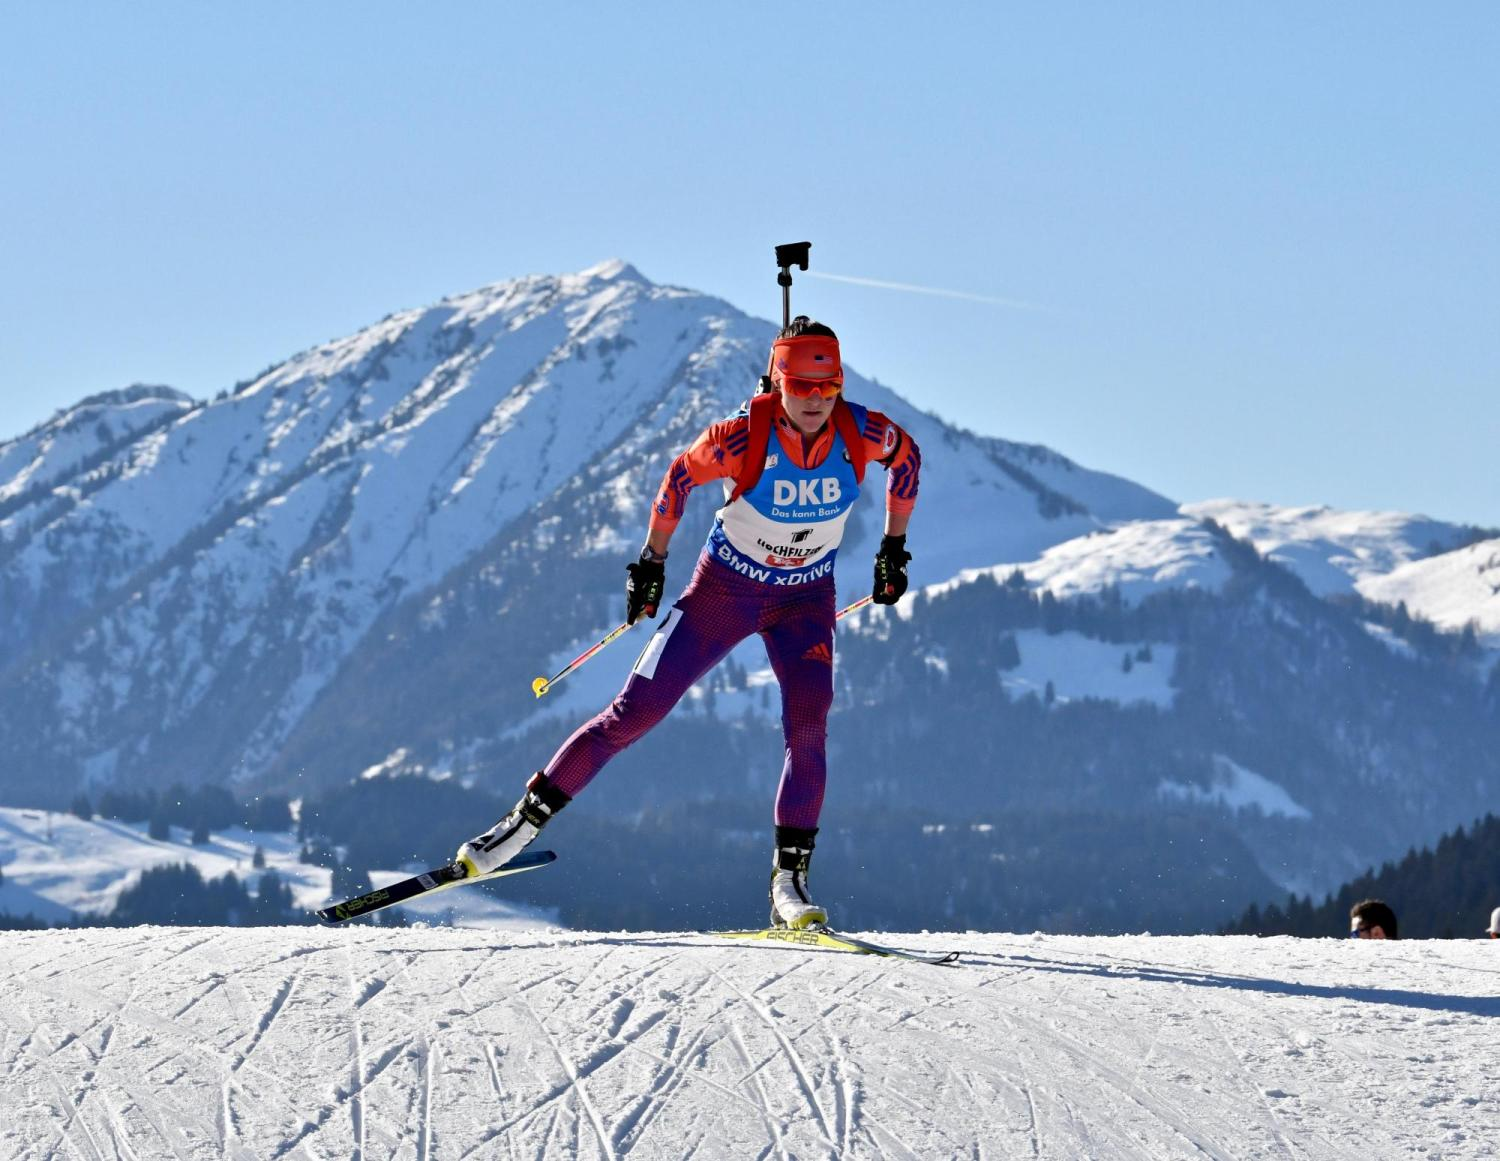 Joanne Reid skiing with a rifle on her back